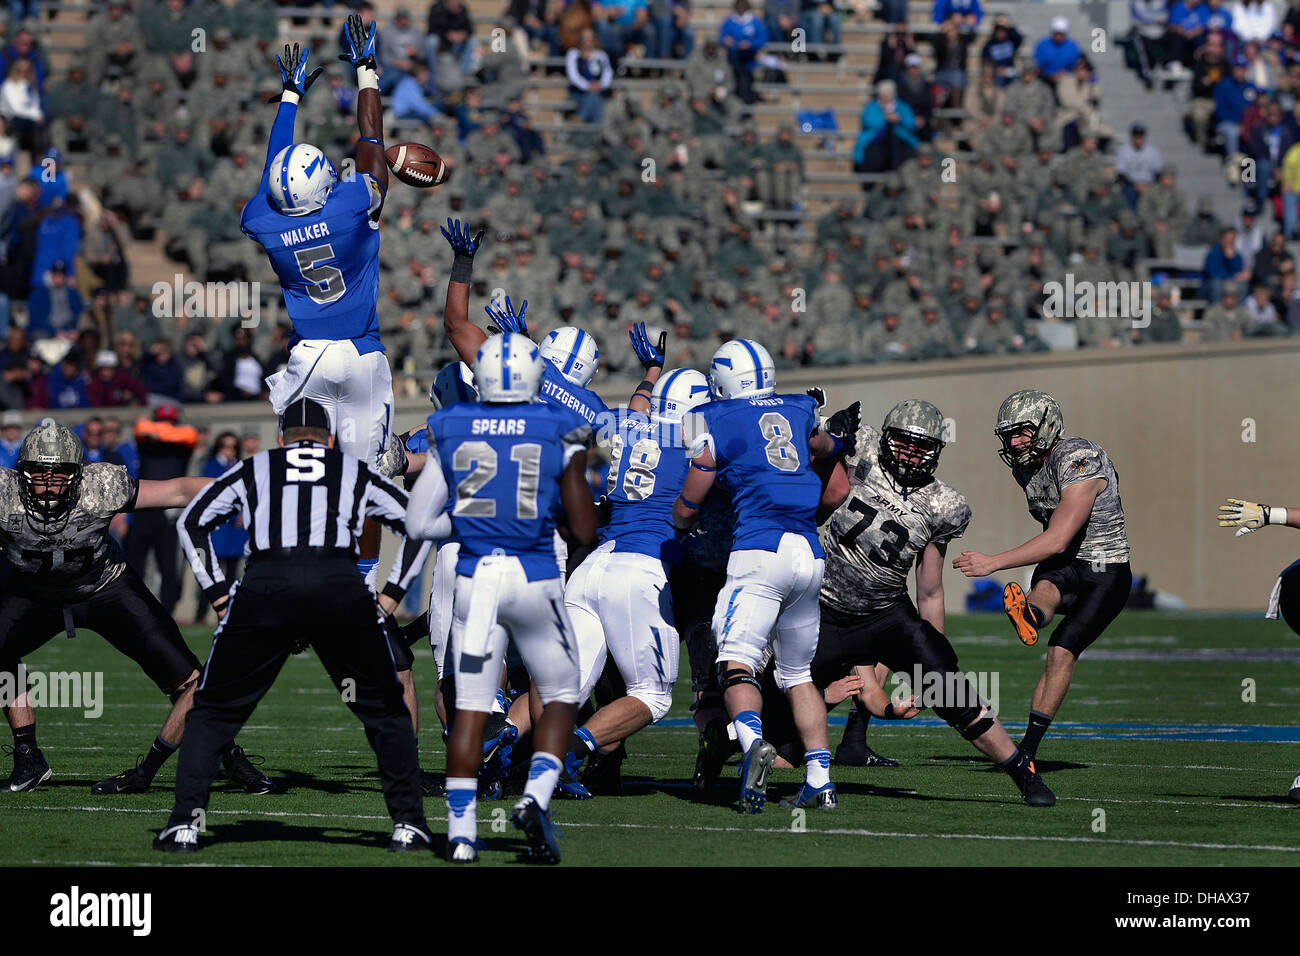 Falcon defensive back Dexter Walker, a sophomore, jumps up to block a field goal during the first quarter of the Air Force vs Army football game at the U.S. Air Force Academy's Falcon Stadium in Colorado Springs, Colo November 2, 2013. - Stock Image